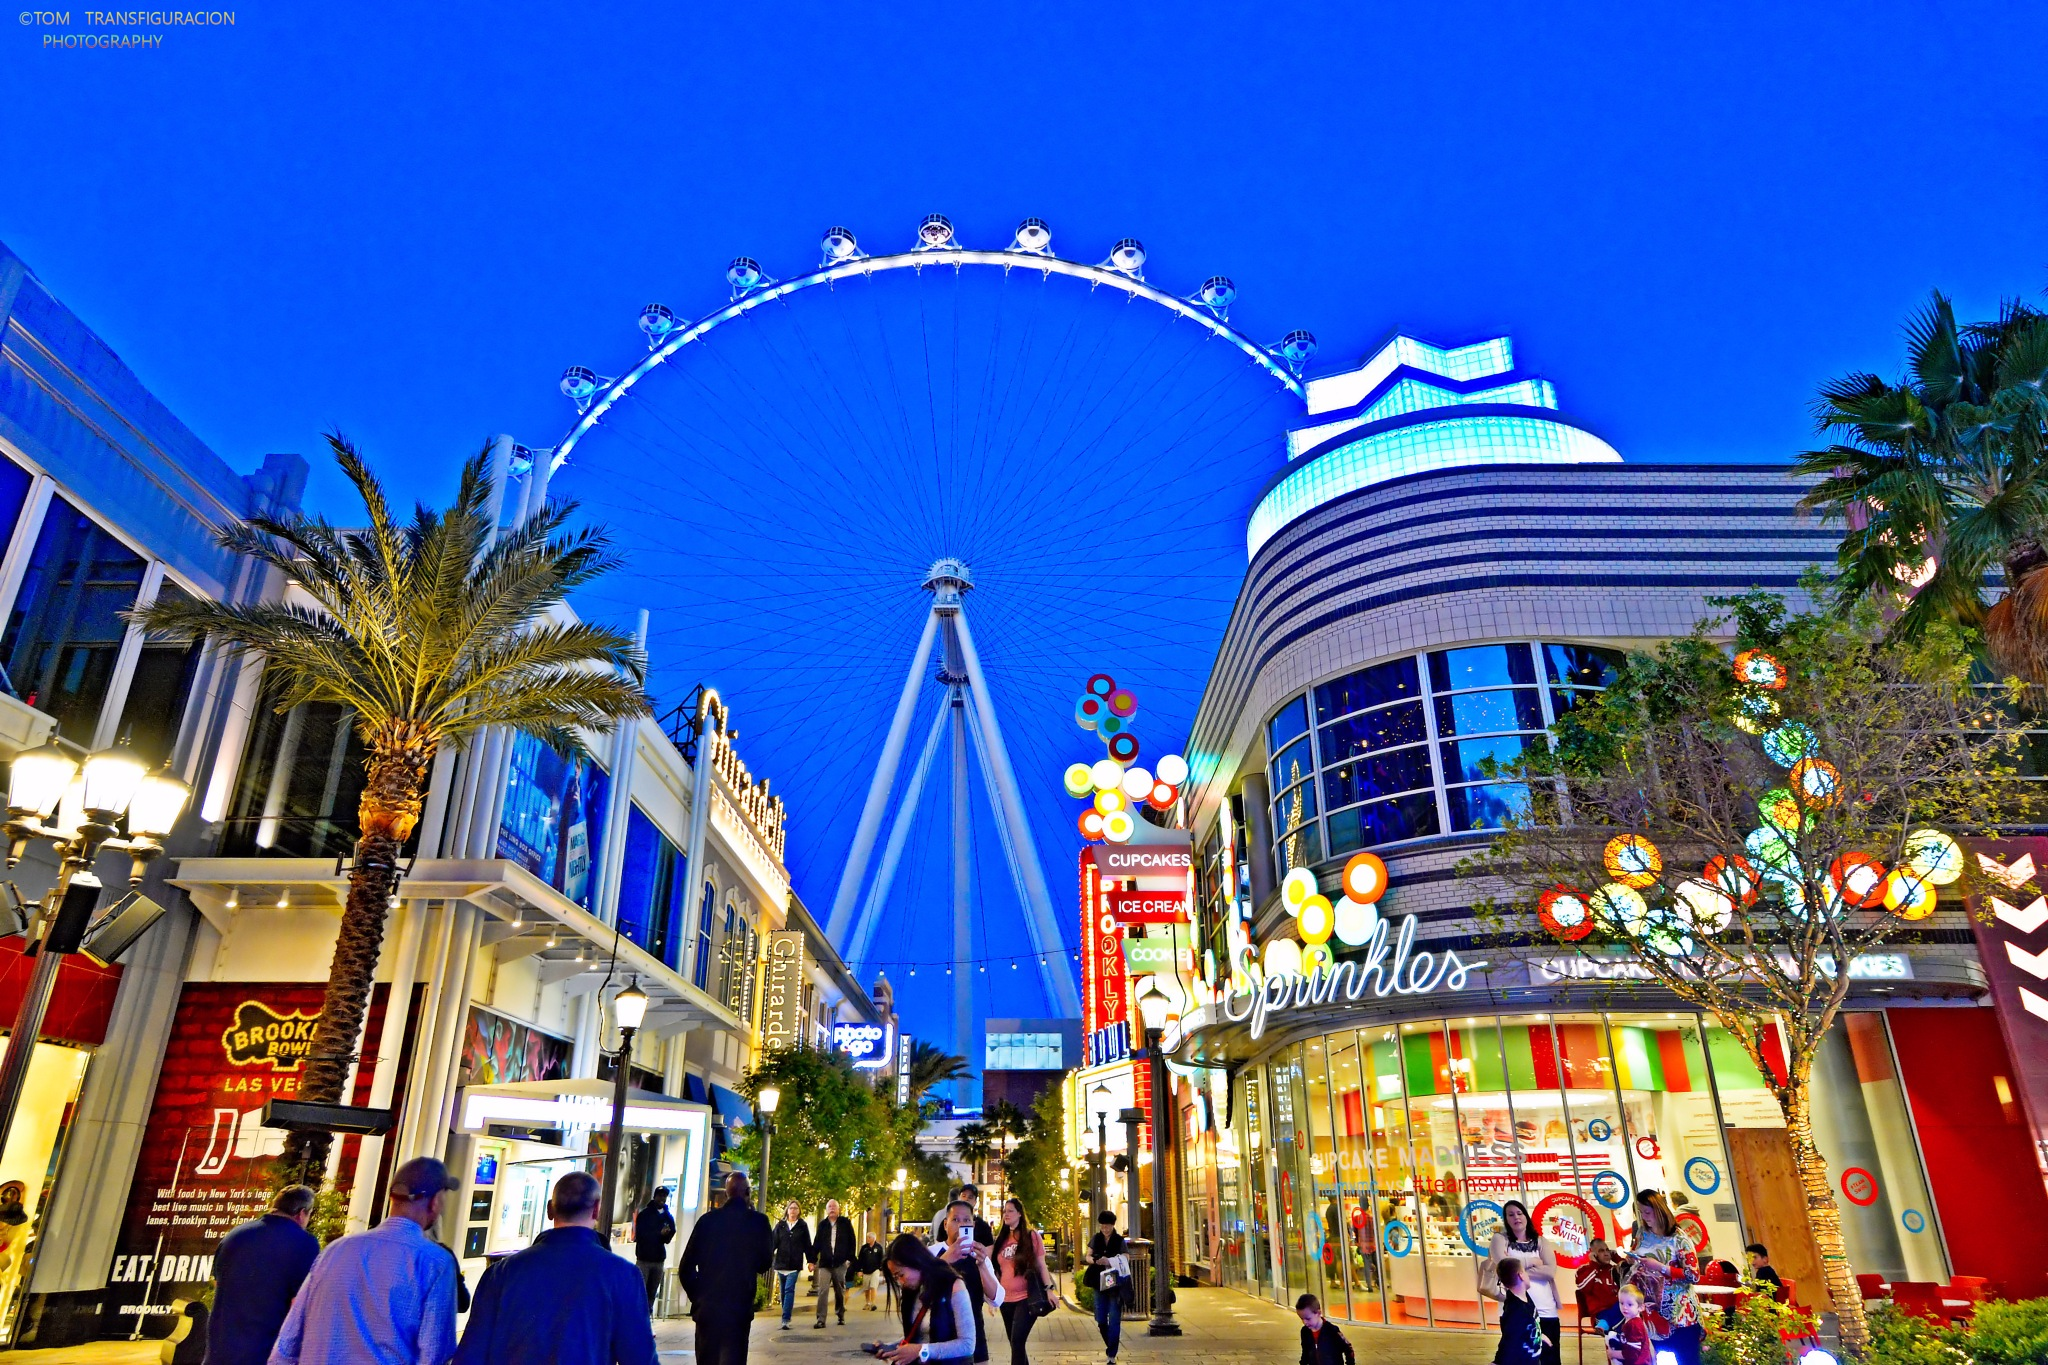 The strip and a high roller by Transfiguracion Images